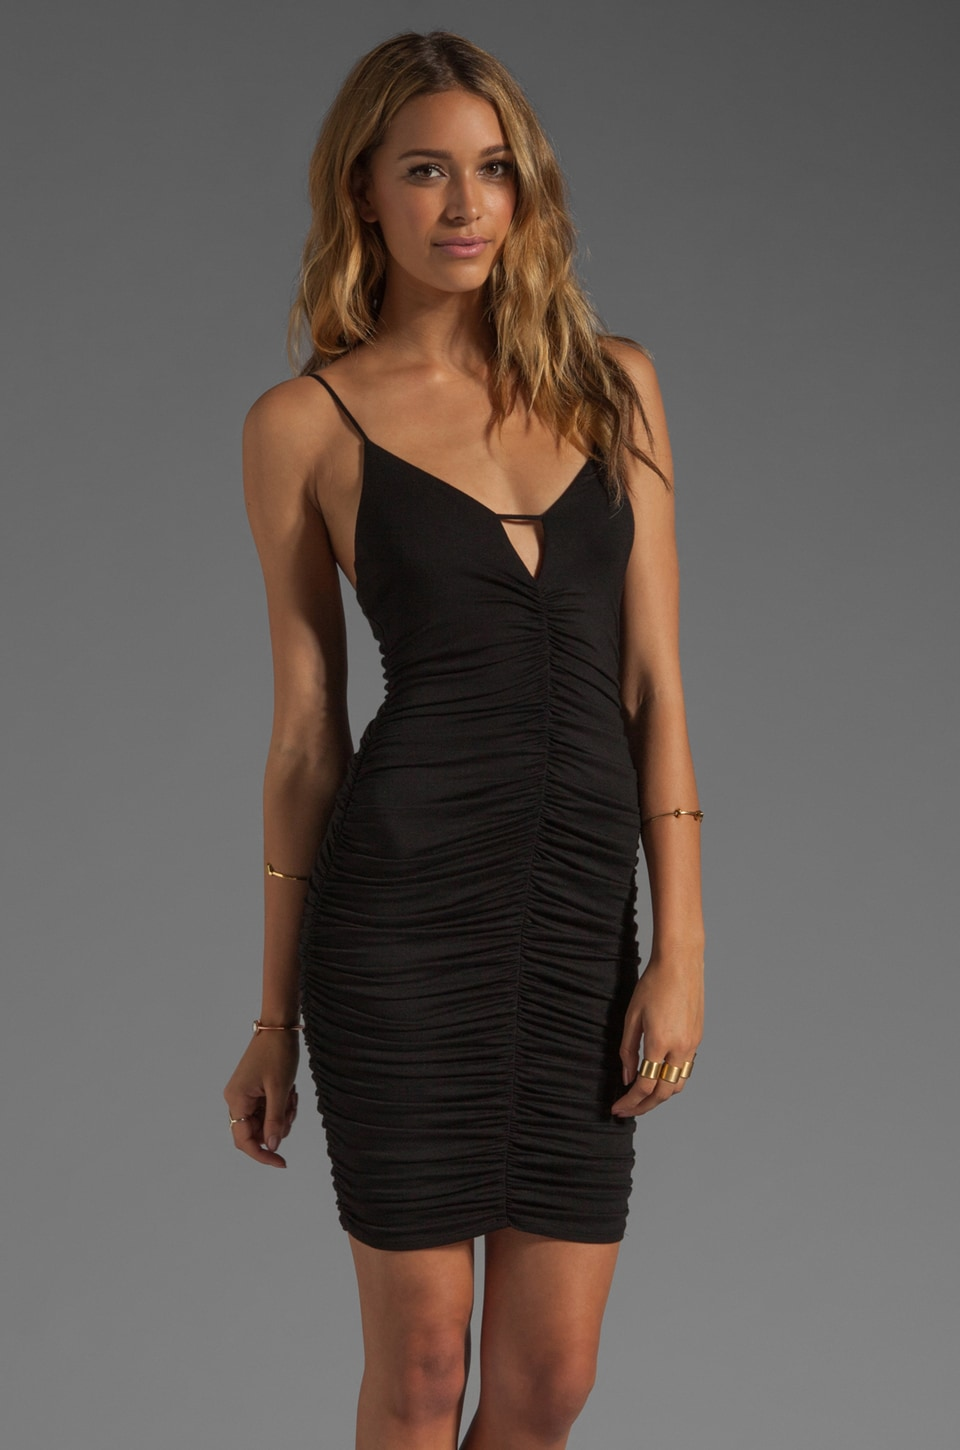 Rachel Pally True Dress in Black